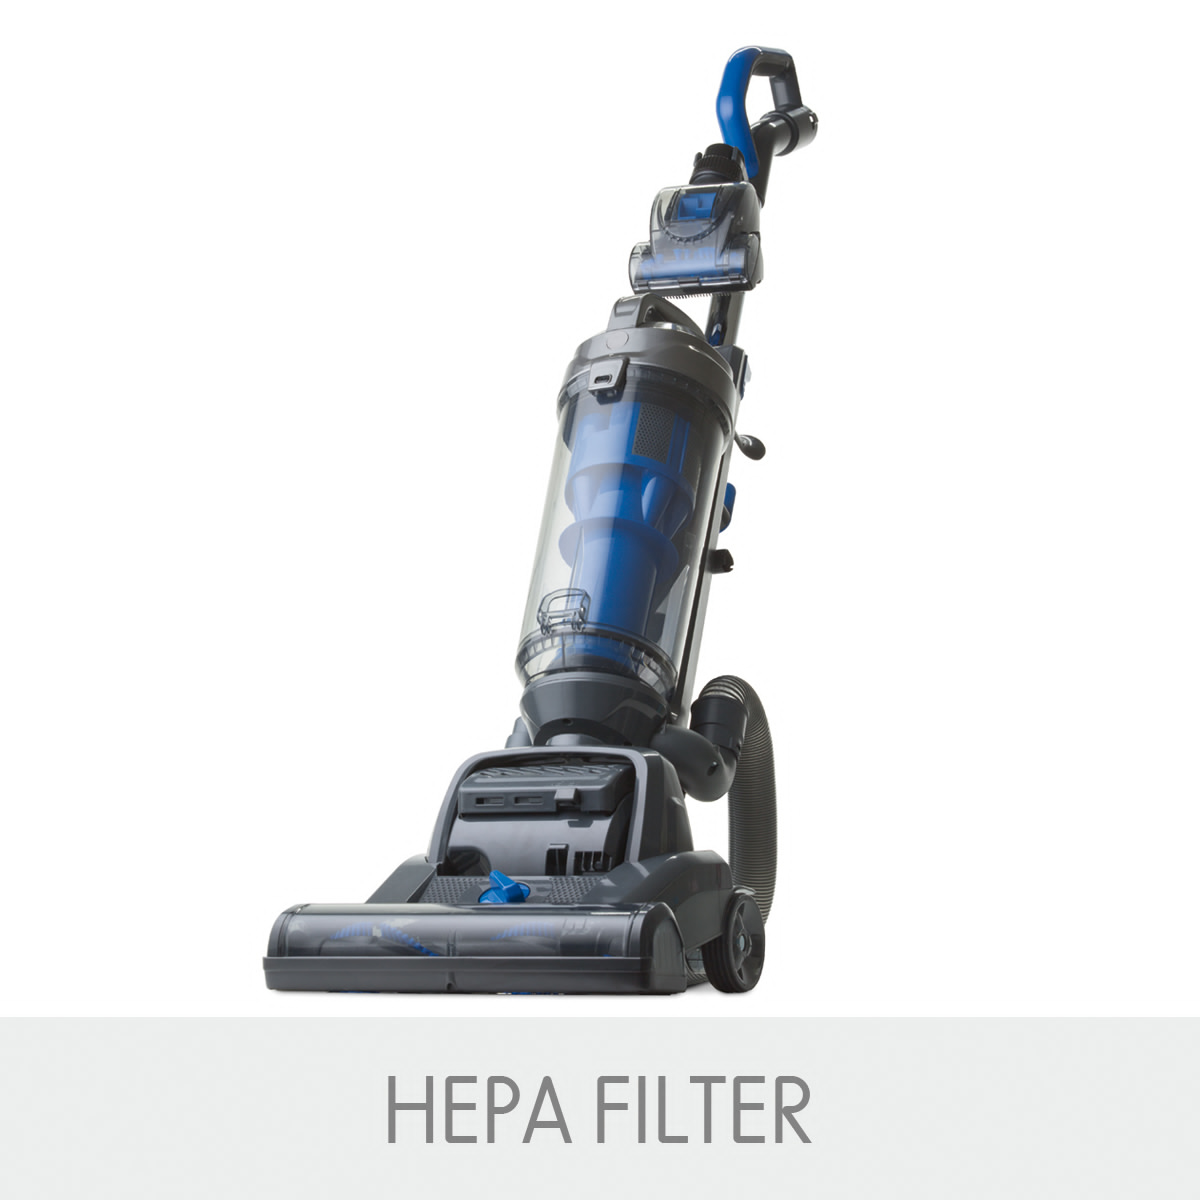 1200w Upright Vacuum Cleaner Hepa Filter Pet Hair Turbo